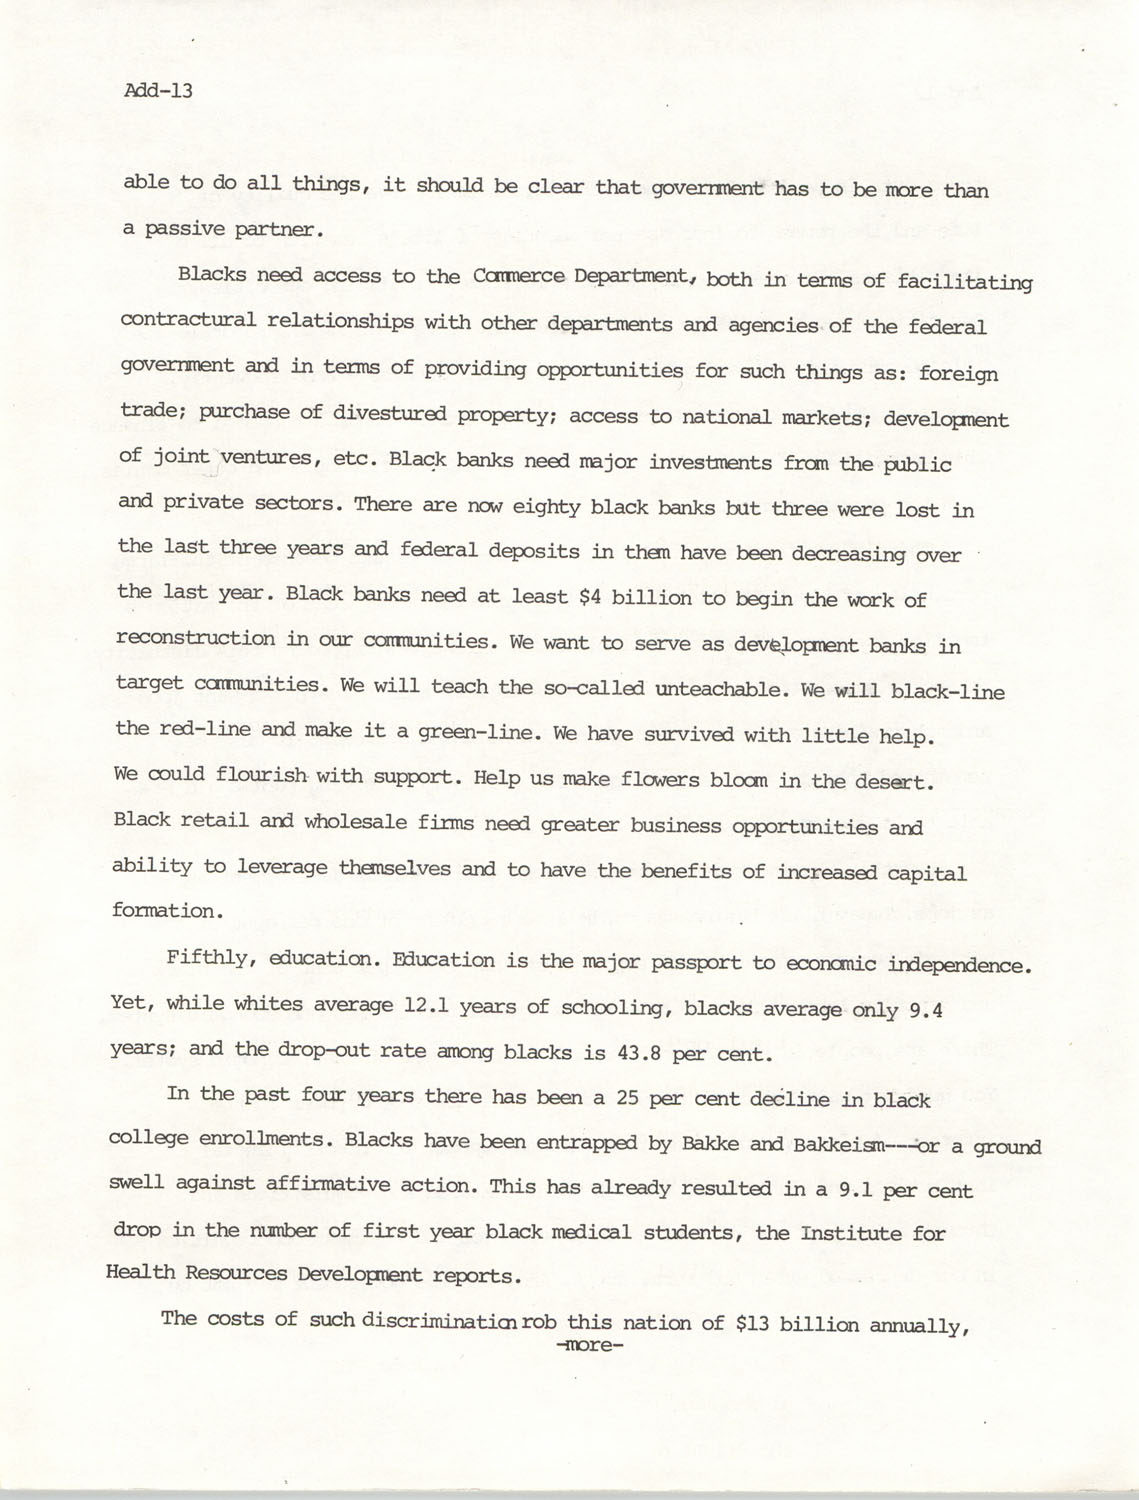 Speech Before the Republican National Committee, Page 13